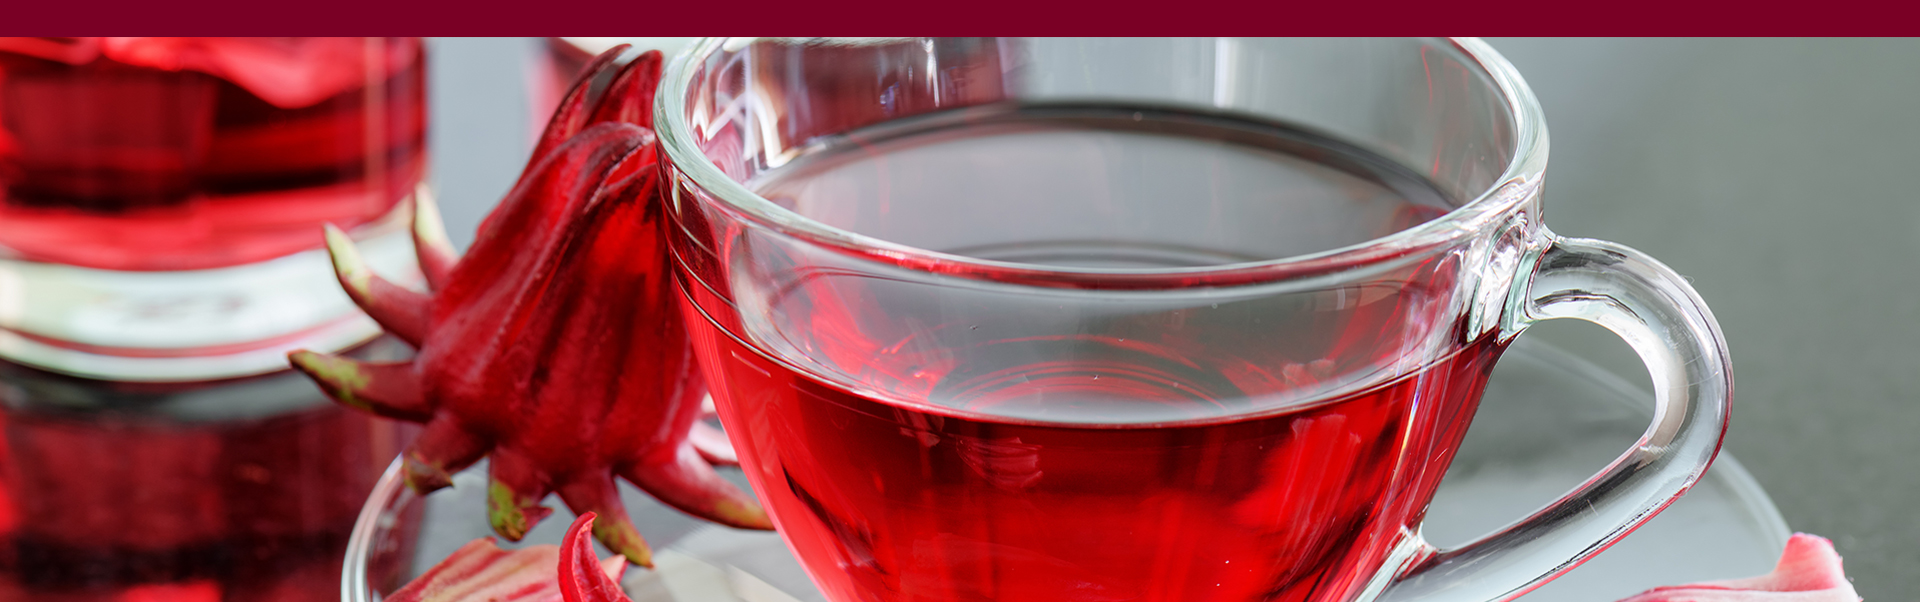 hibiscus flower herbal tea carcade